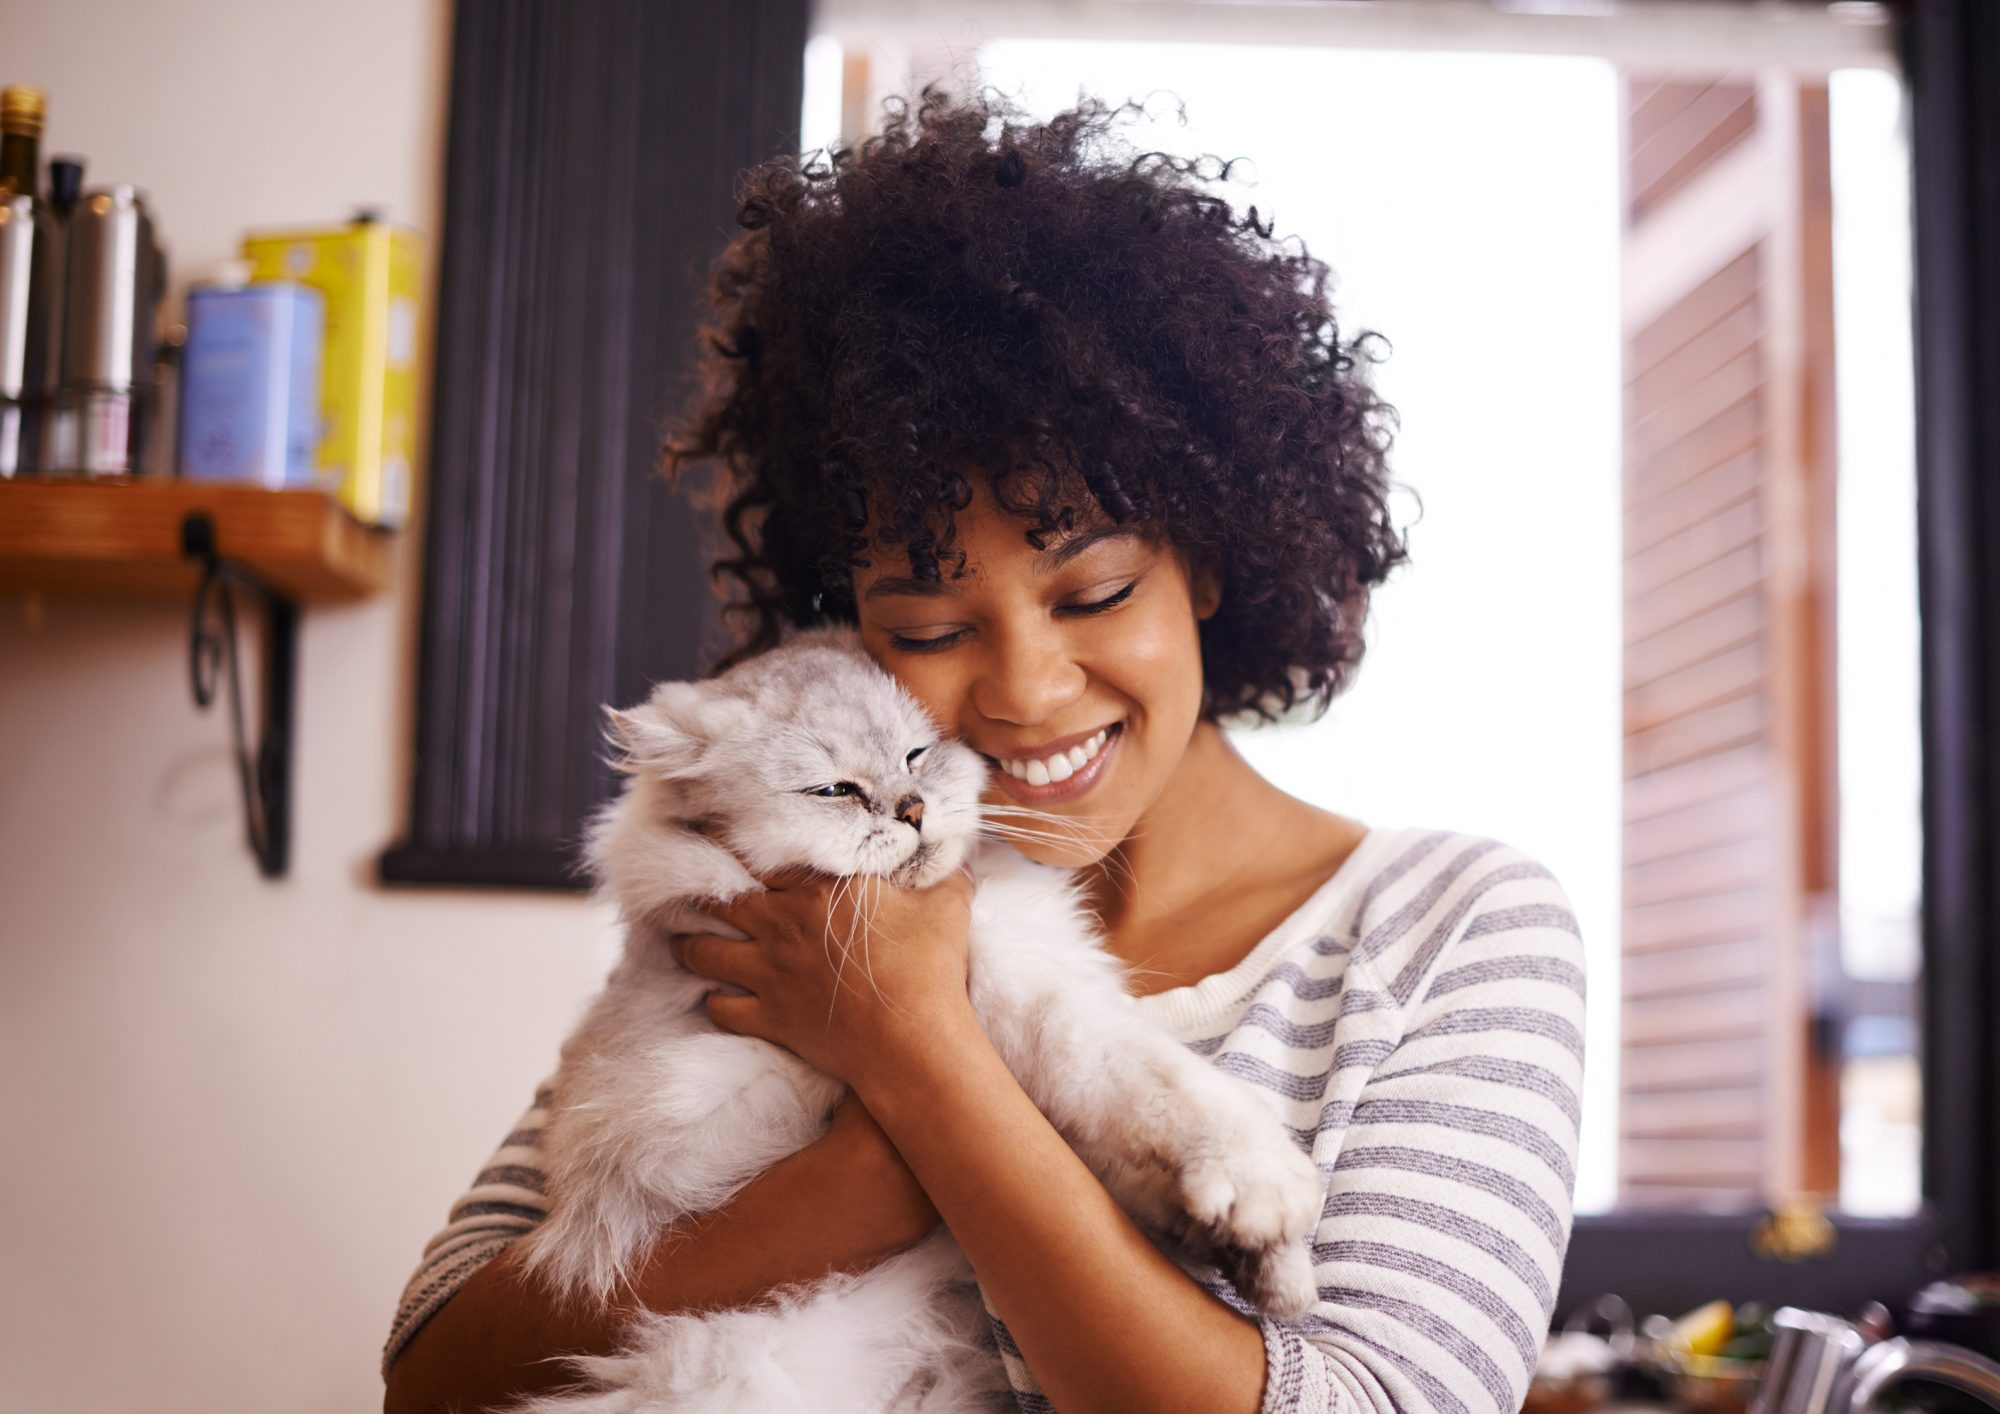 Woman holding a fluffy cat